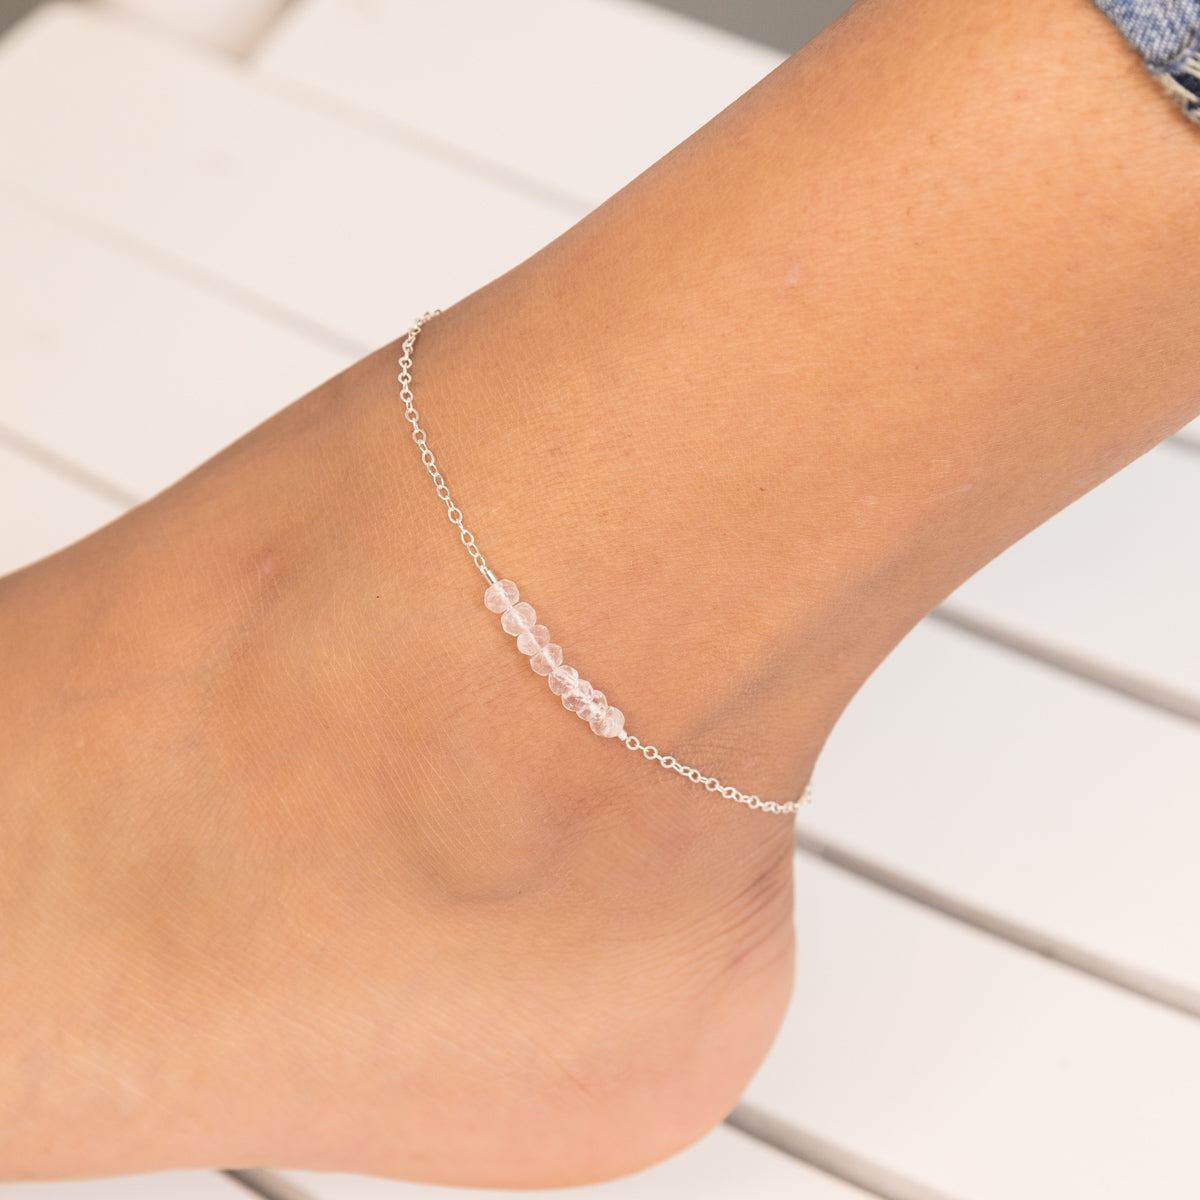 Rose Quartz Anklet,Maid of Honor Jewelry Gift, Bridal Party Jewelry, Healing Crystal Jewelry, Dainty Rose Quartz Ankle Bracelet, Minimal Anklet, Bohemian Ankle Bracelet, Crystal Jewelry, Gemstone Anklet, Liz.Beth Jewelry Co.